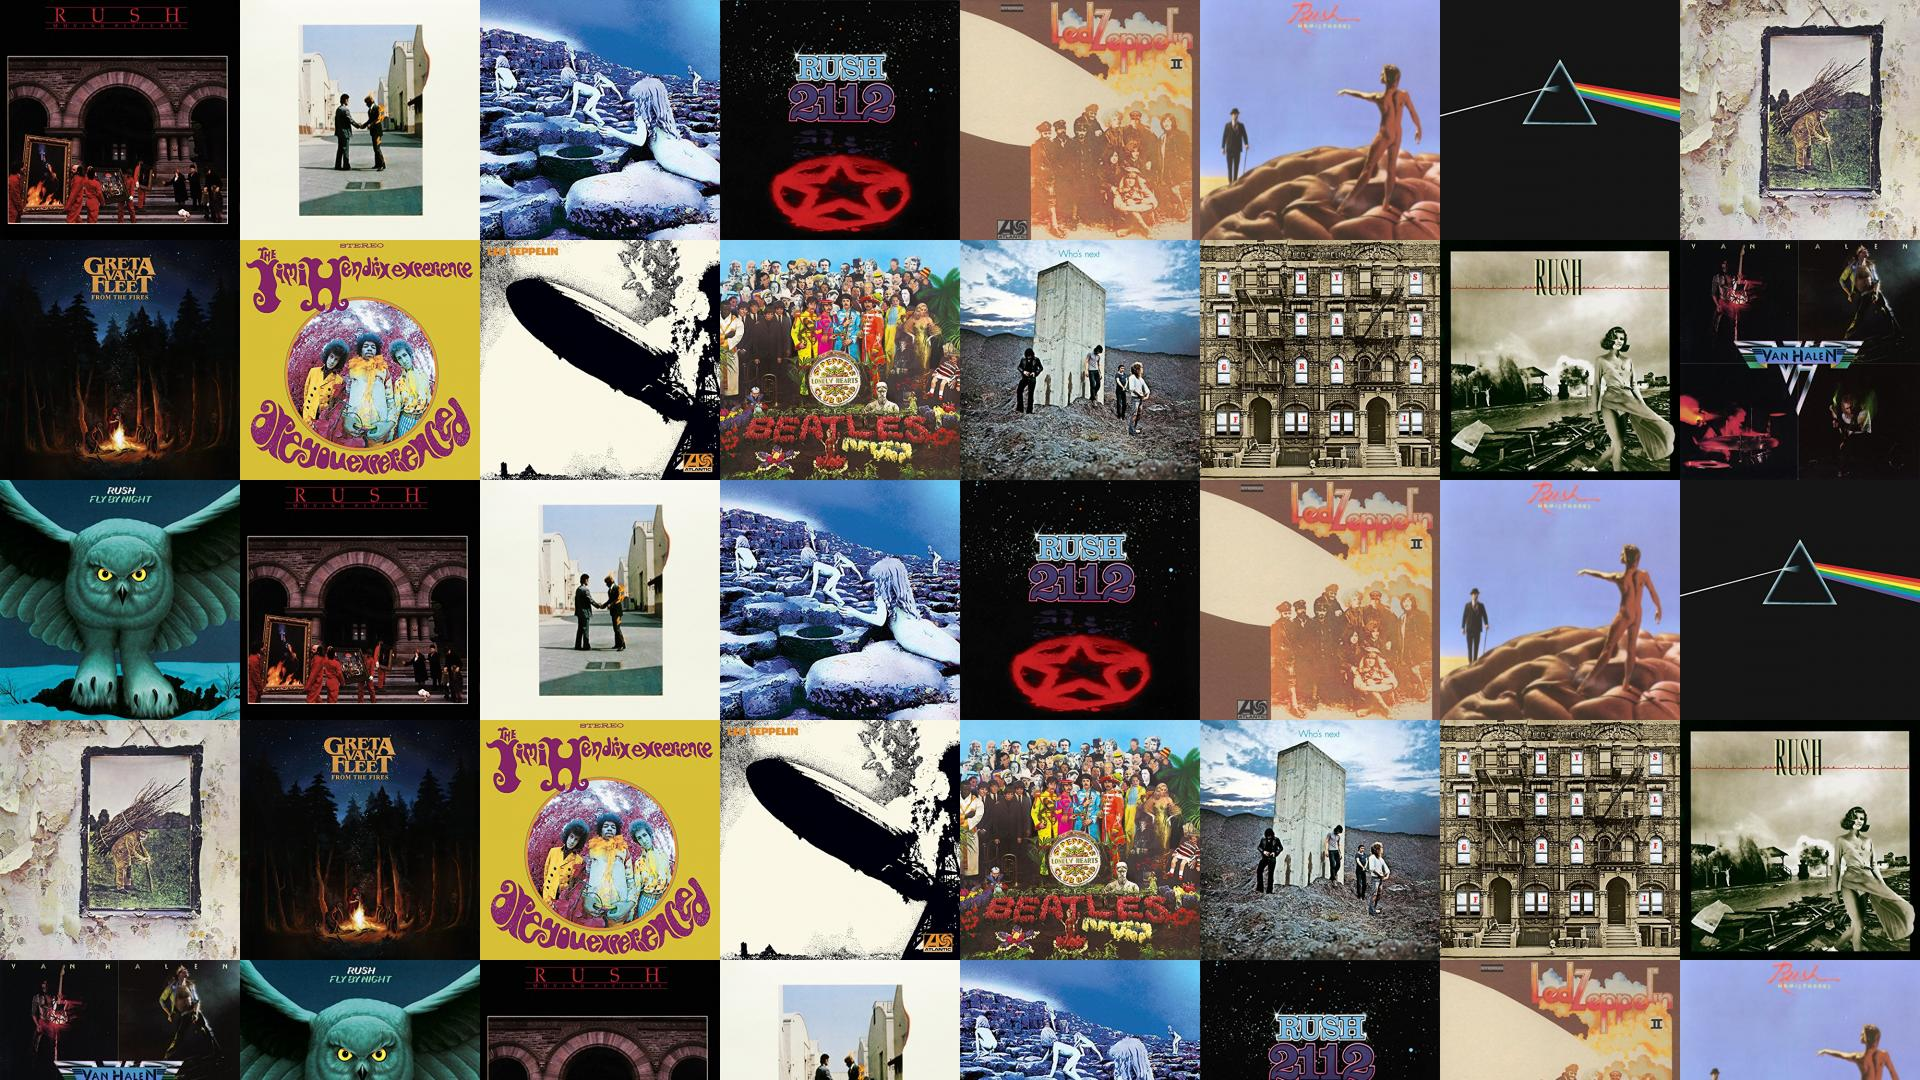 Rush Moving Pictures Pink Floyd Wish You Were Wallpaper